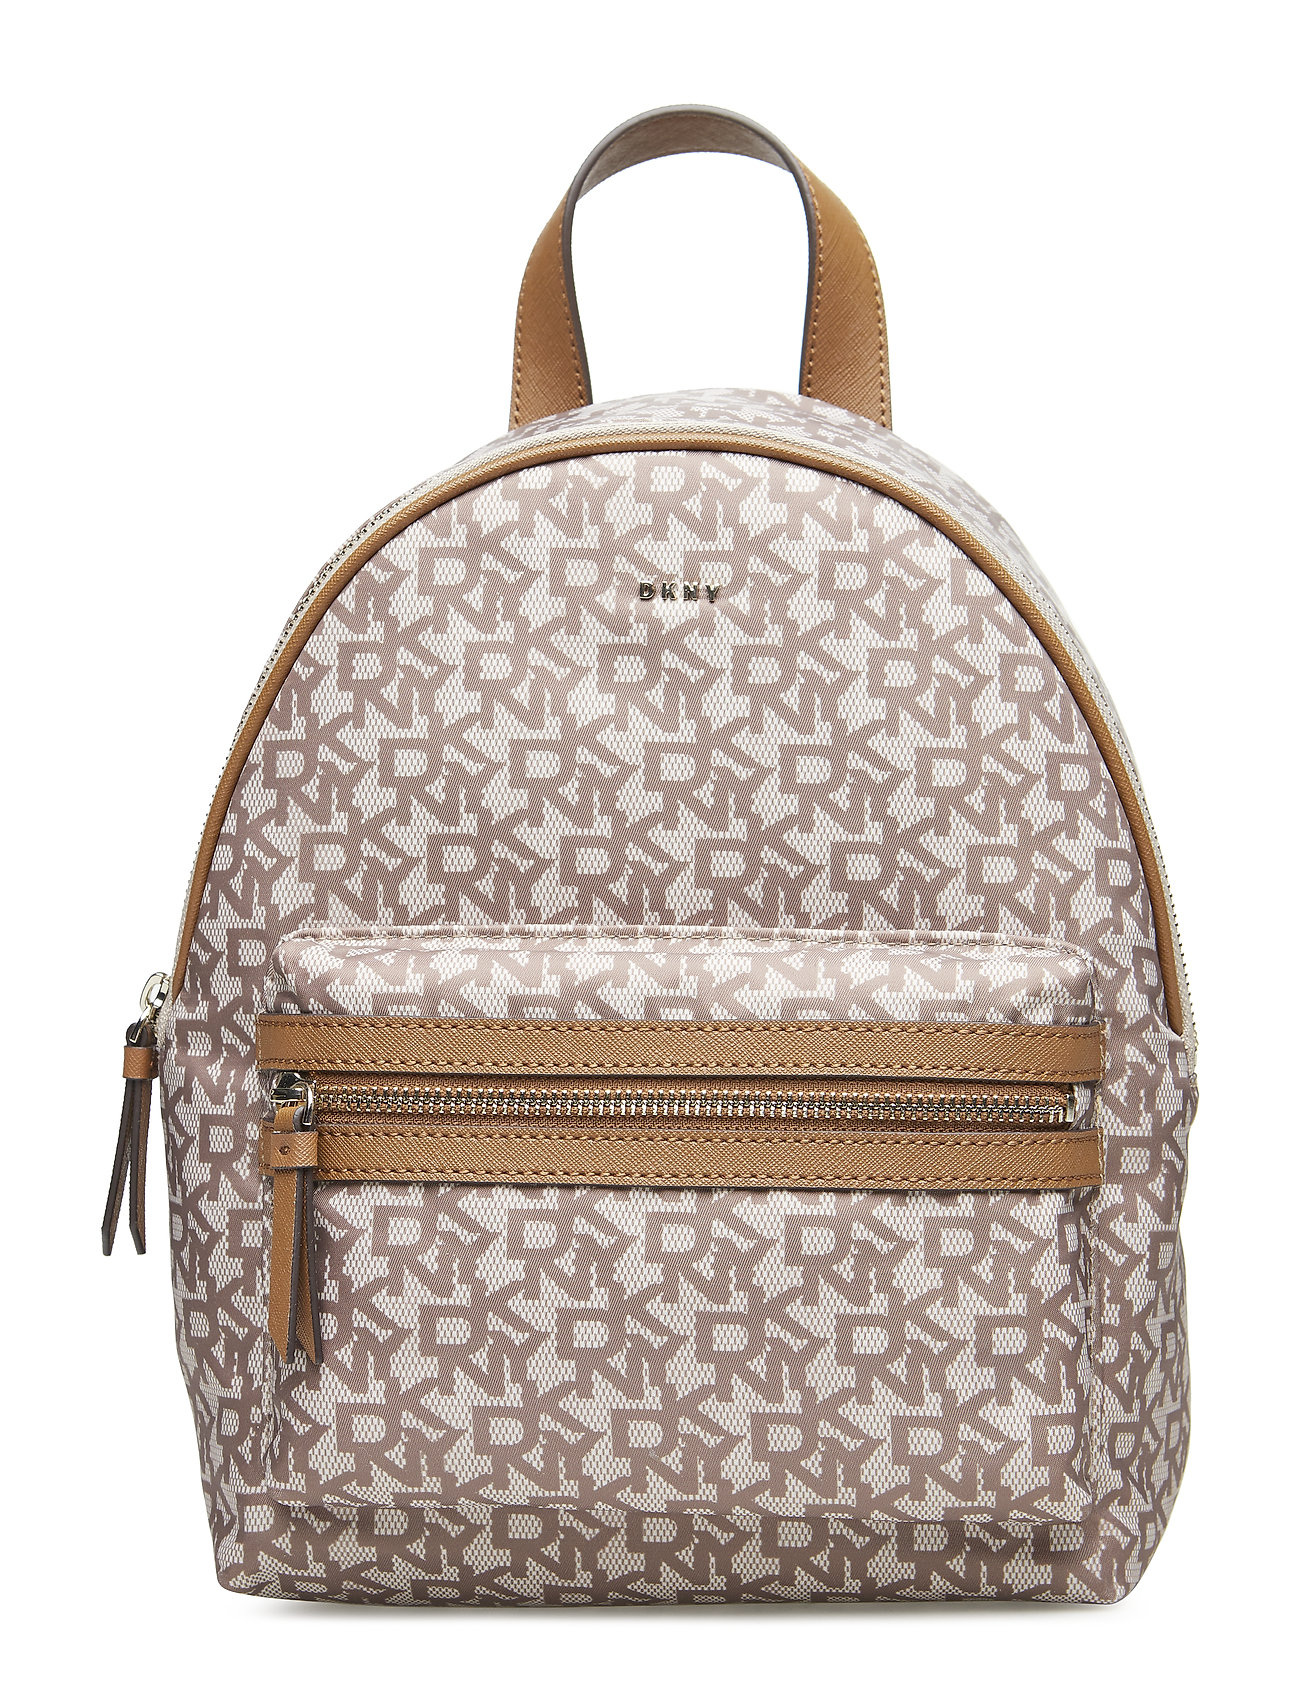 DKNY Casey Bags Backpacks Use This Pink DKNY BAGS